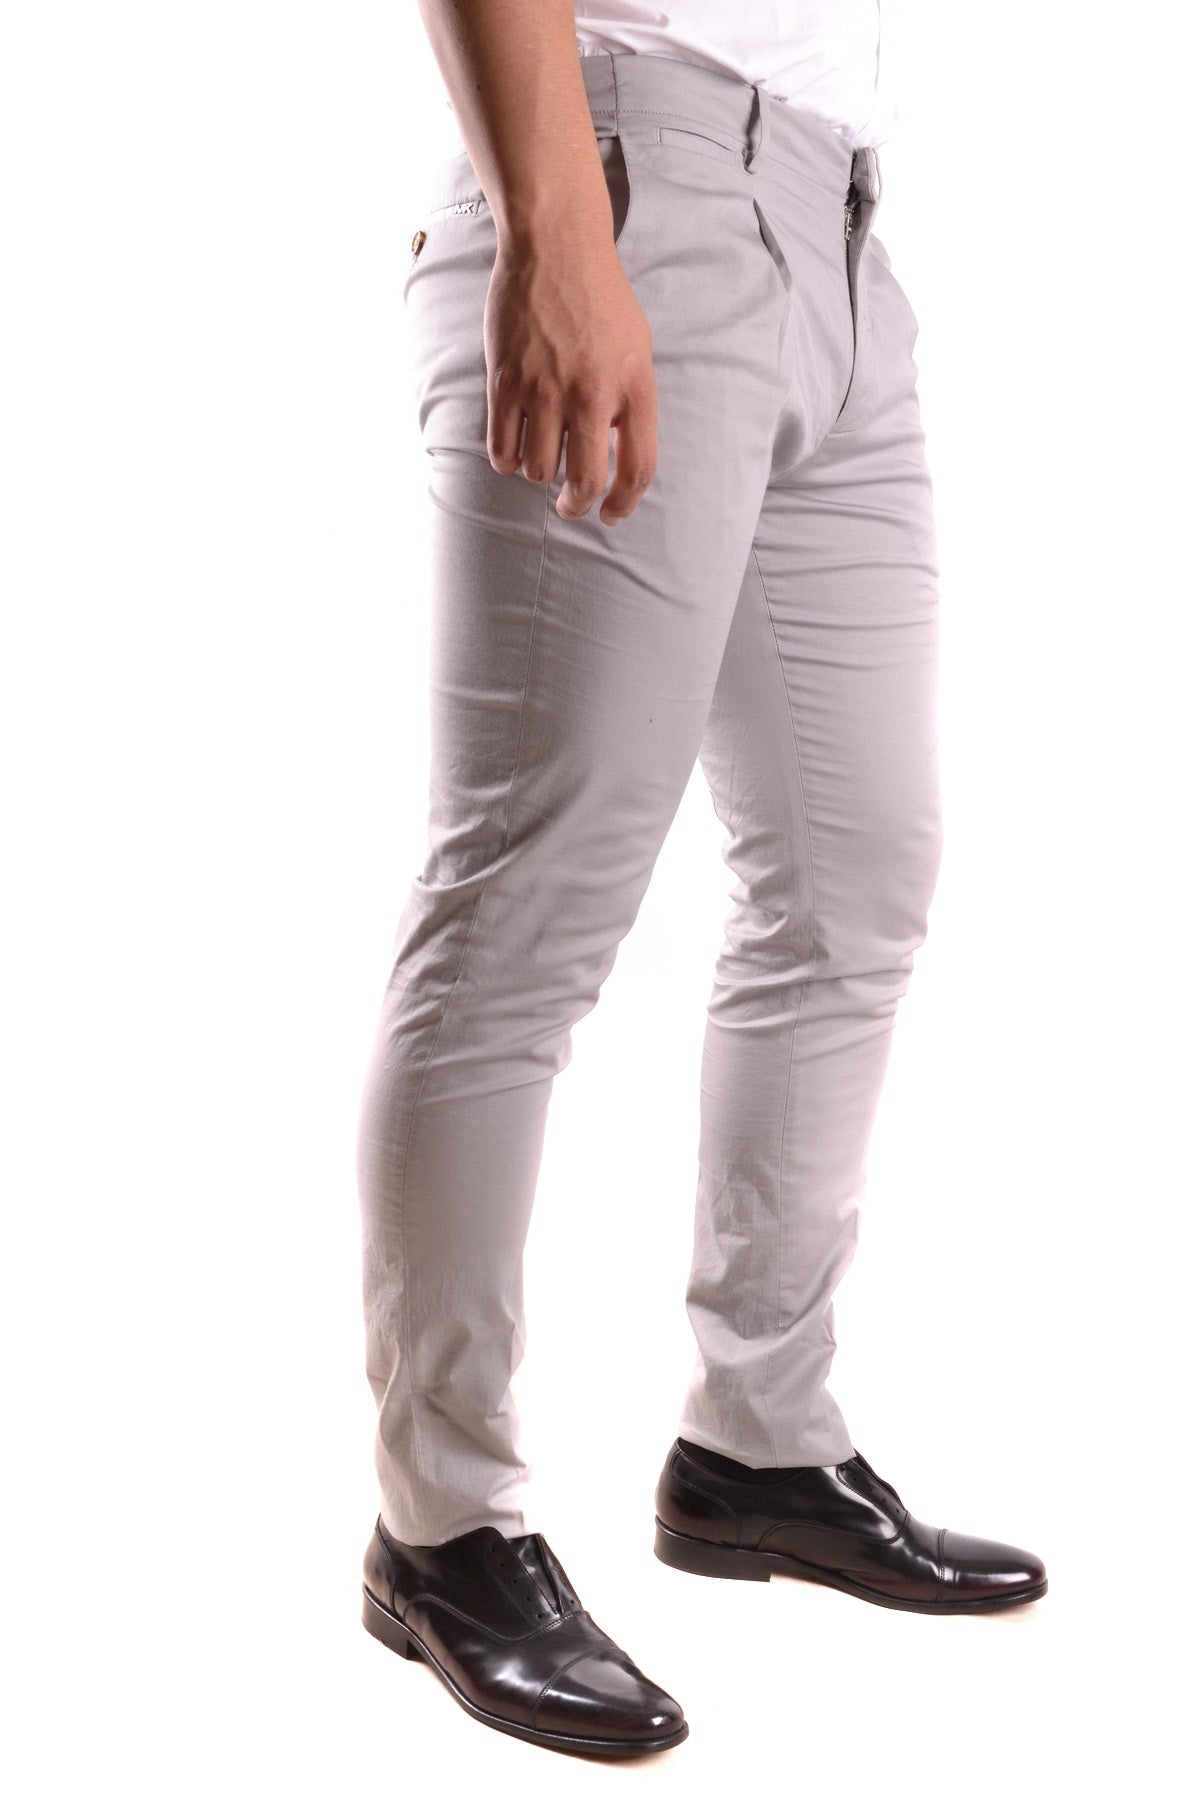 Trousers Michael Kors-Trousers - MAN-Product Details Terms: New With LabelYear: 2017Main Color: GraySeason: Spring / SummerMade In: ChinaSize: UsGender: ManClothing Type: TrousersComposition: Cotton 99%, Elastane 1%-Keyomi-Sook